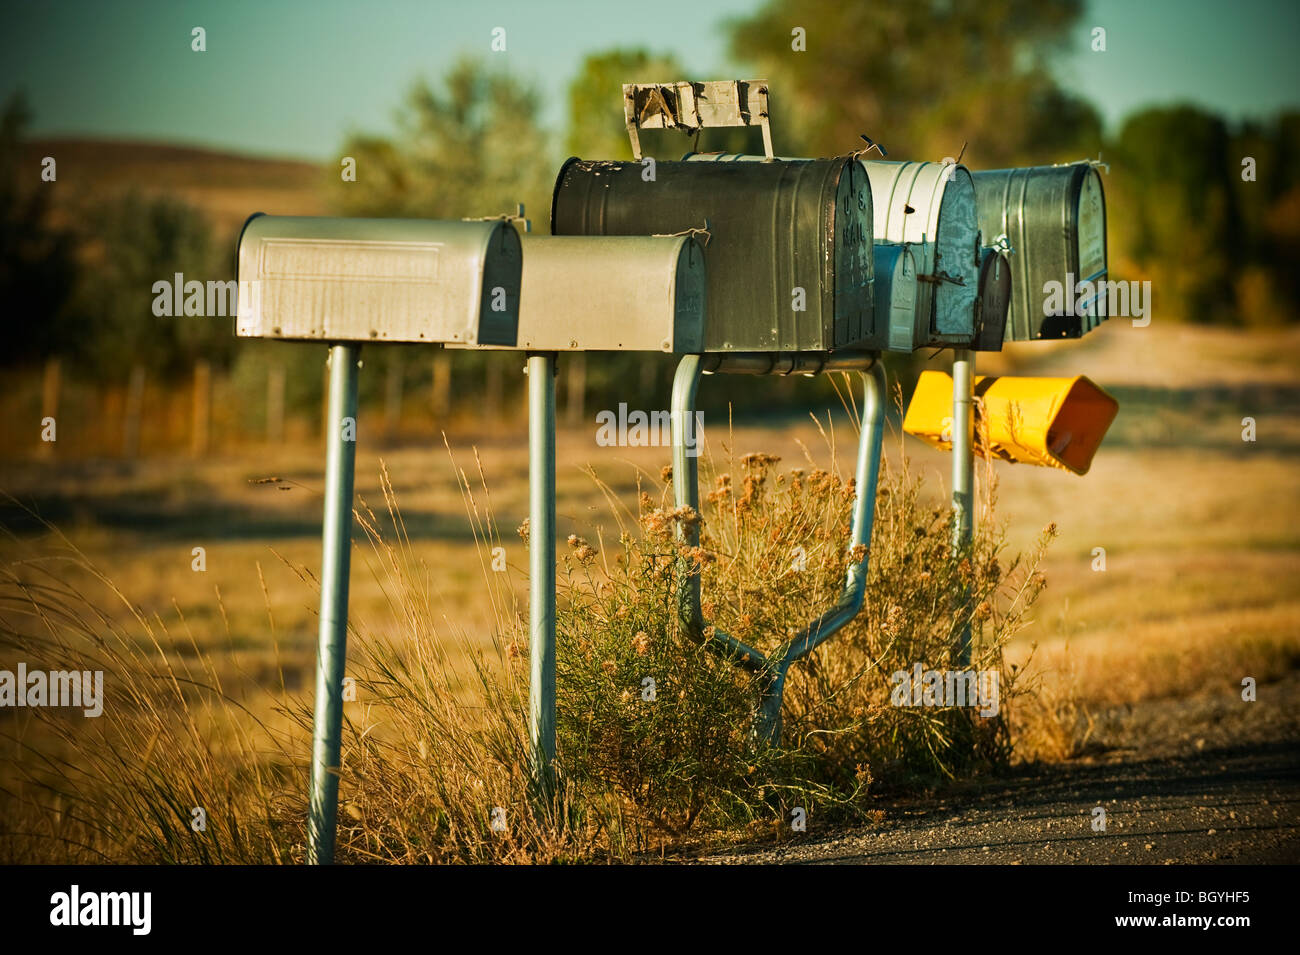 Mailboxes - Stock Image